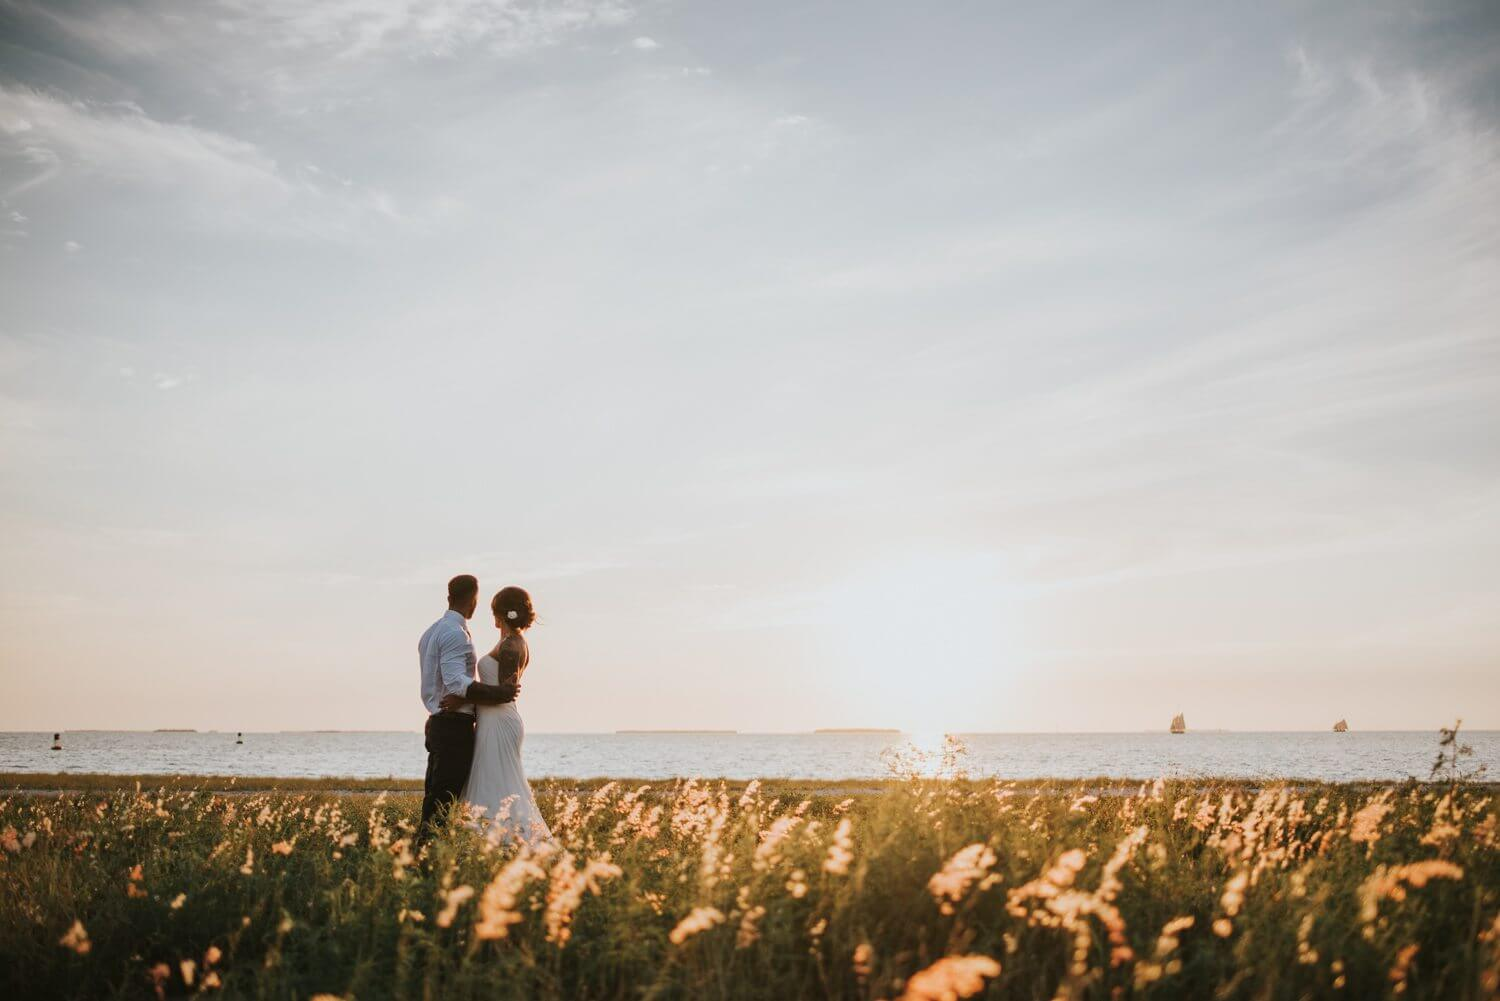 Fort Zachary Taylor Elopement KJ 34 - Key West Elopement - Fort Zachary Taylor - Key West Wedding Photographer